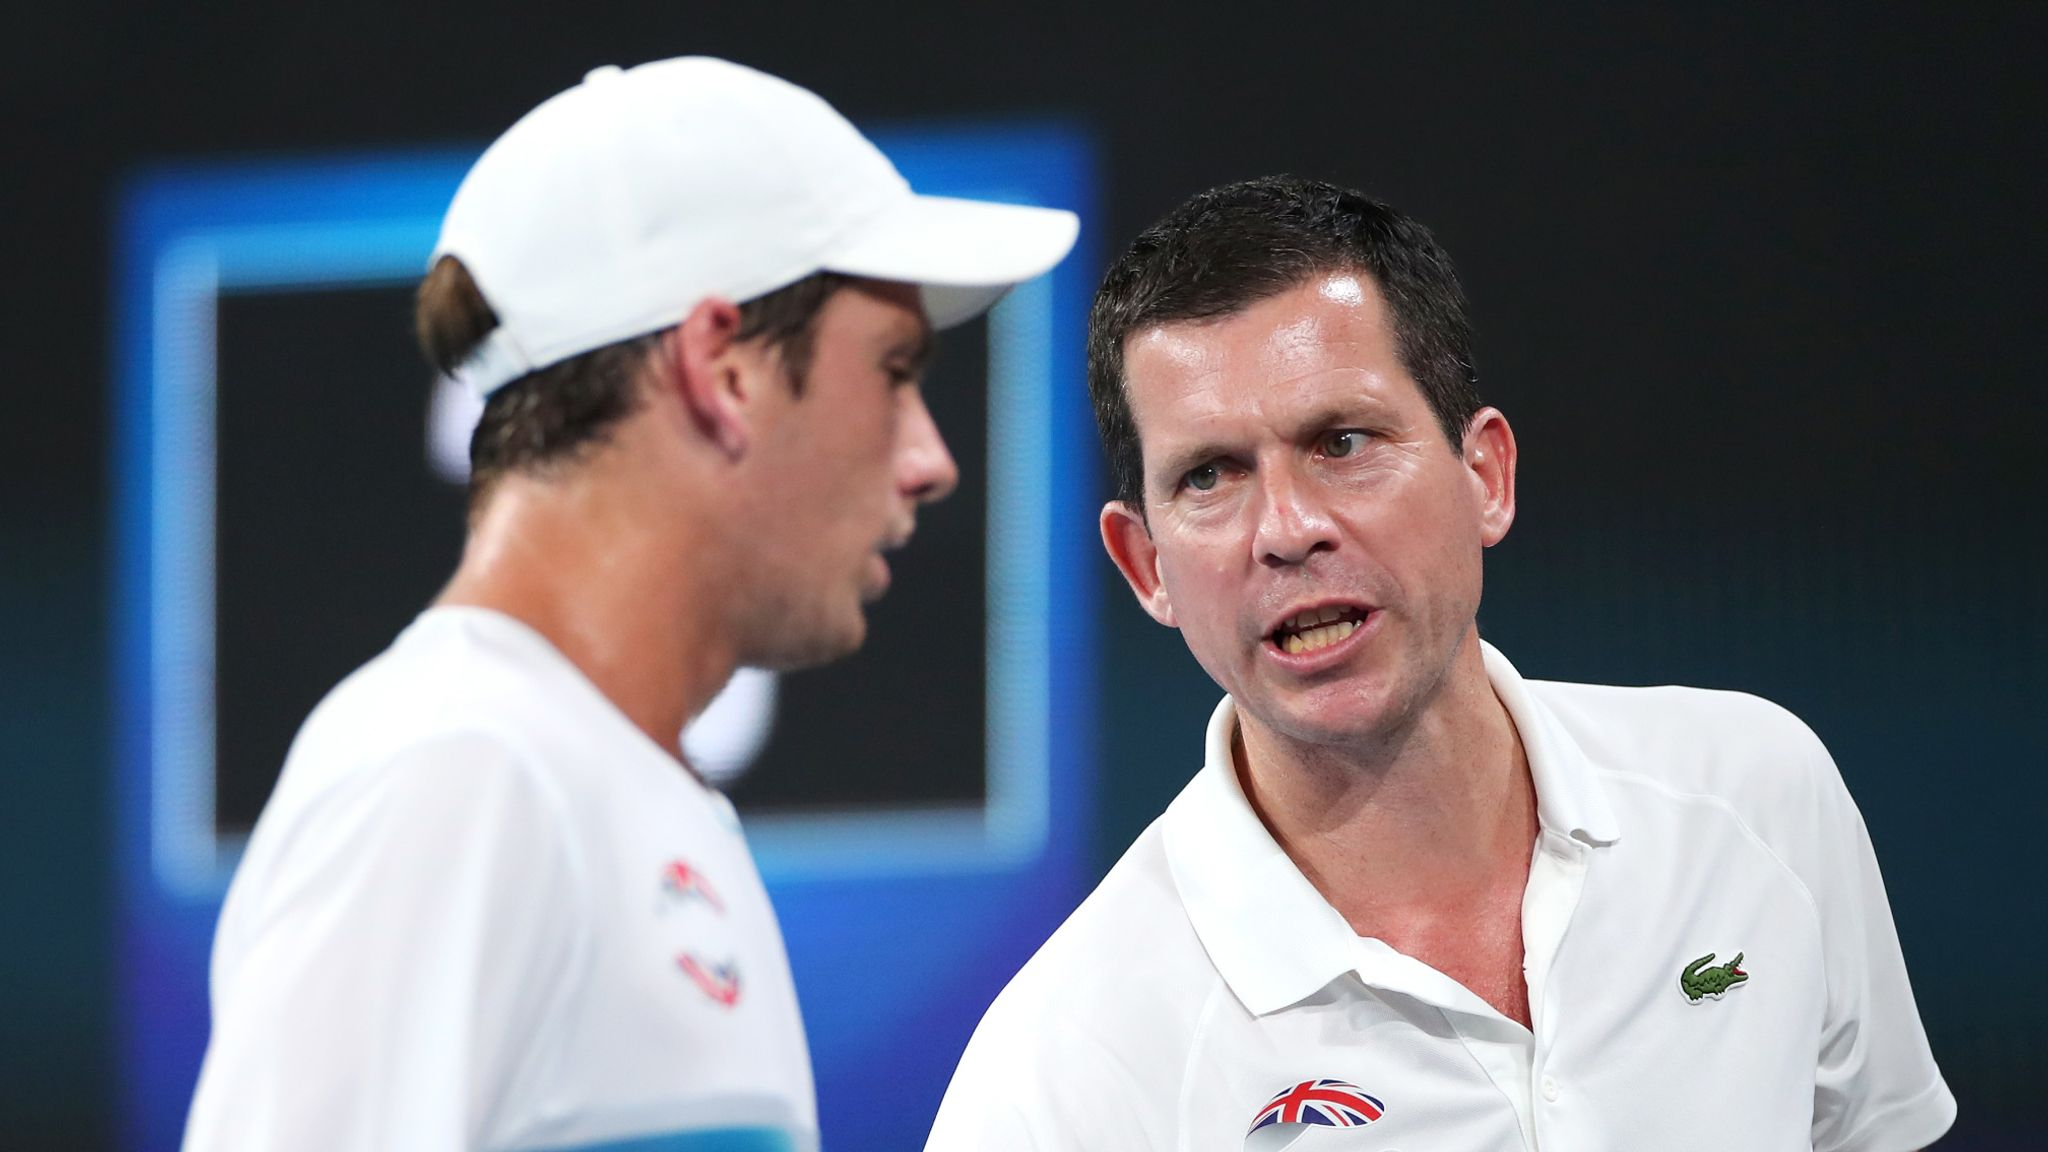 Great Britain's ATP Cup tie with Bulgaria heads into deciding rubber